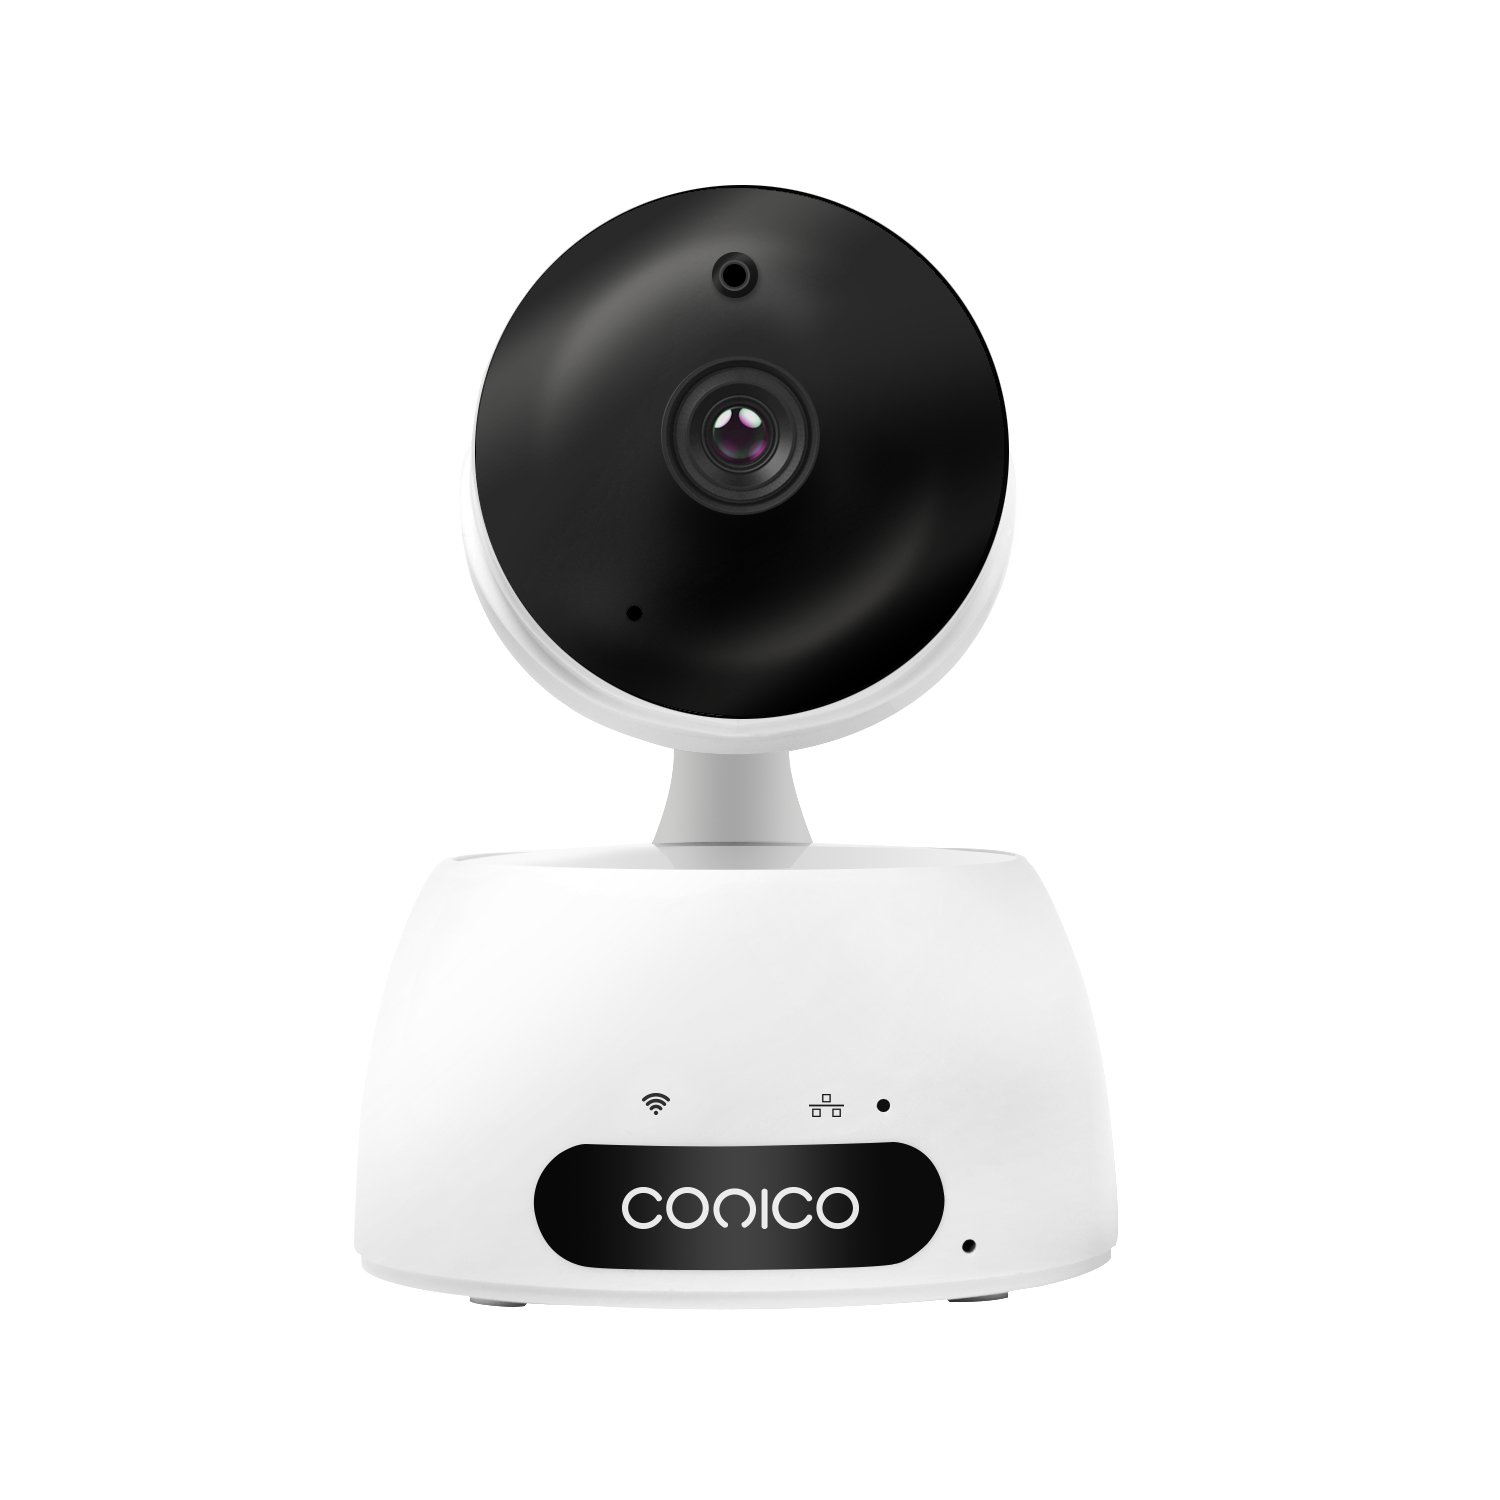 Wireless Camera, 720p Conico WiFi Video Baby Monitor Home Security Surveillance Indoor Camera Provides Two Way Audio Pan&Tilt Remote Viewing Reliable Night Vision Real Time Motion Alerts